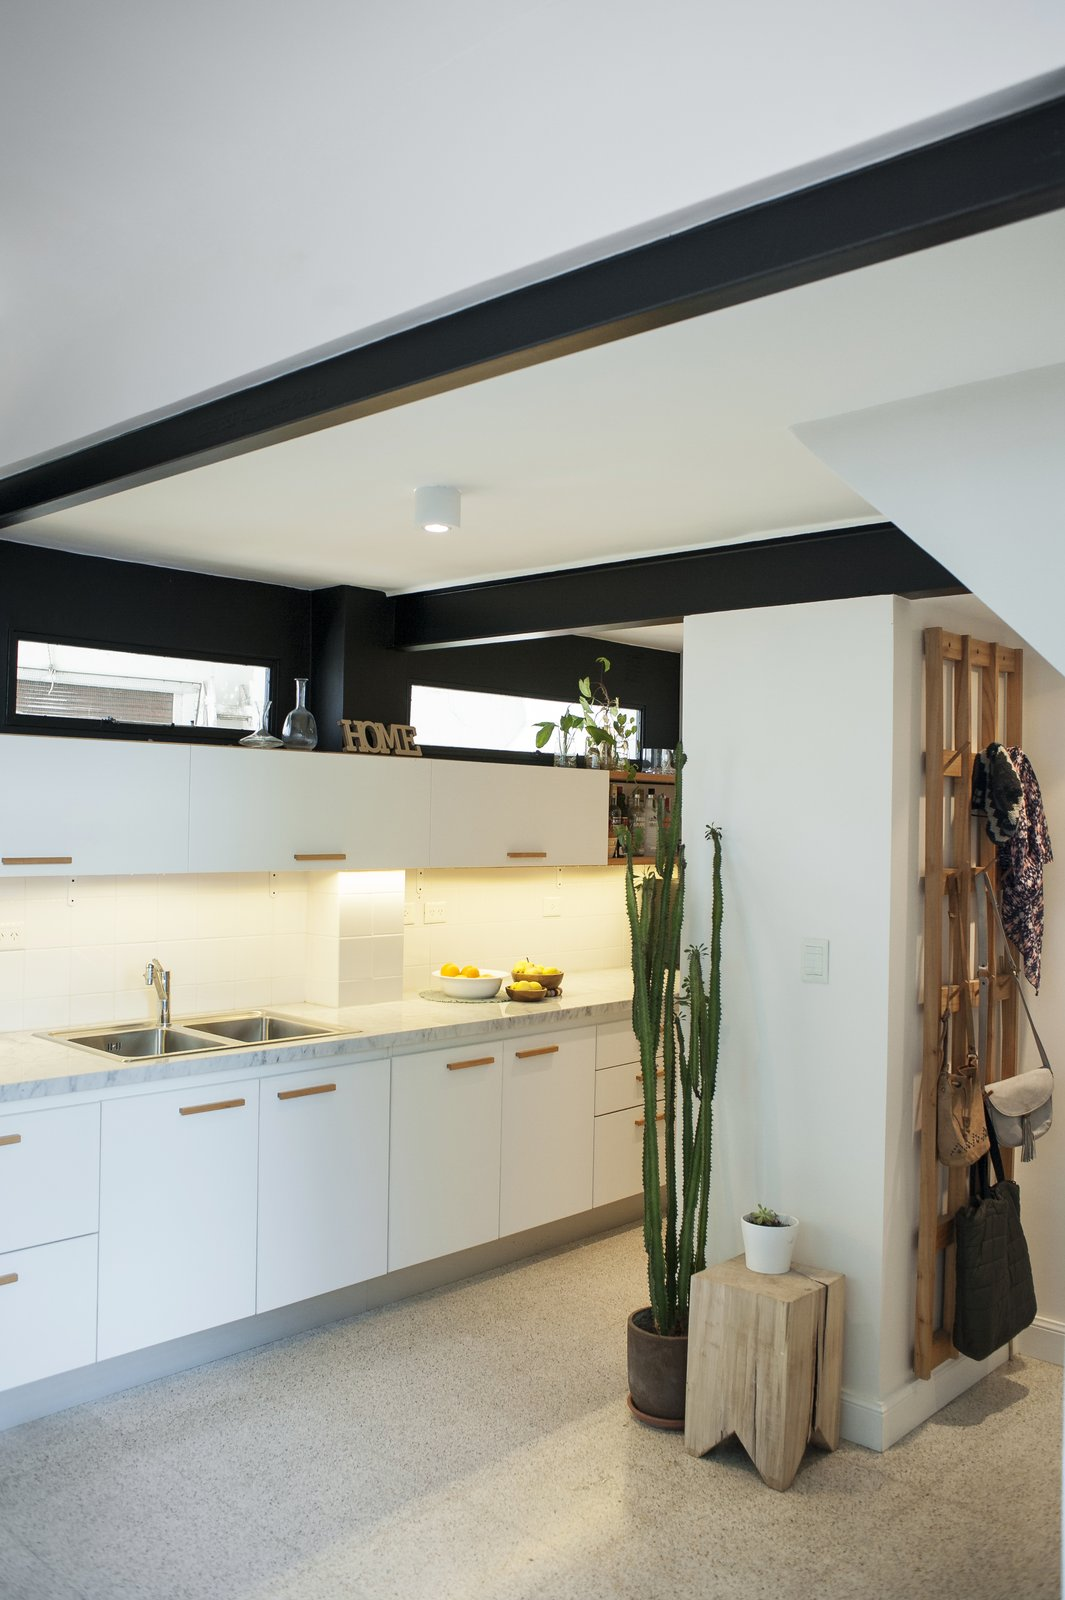 The original beams and the wall above the cupboard have been painted in black  Artigas